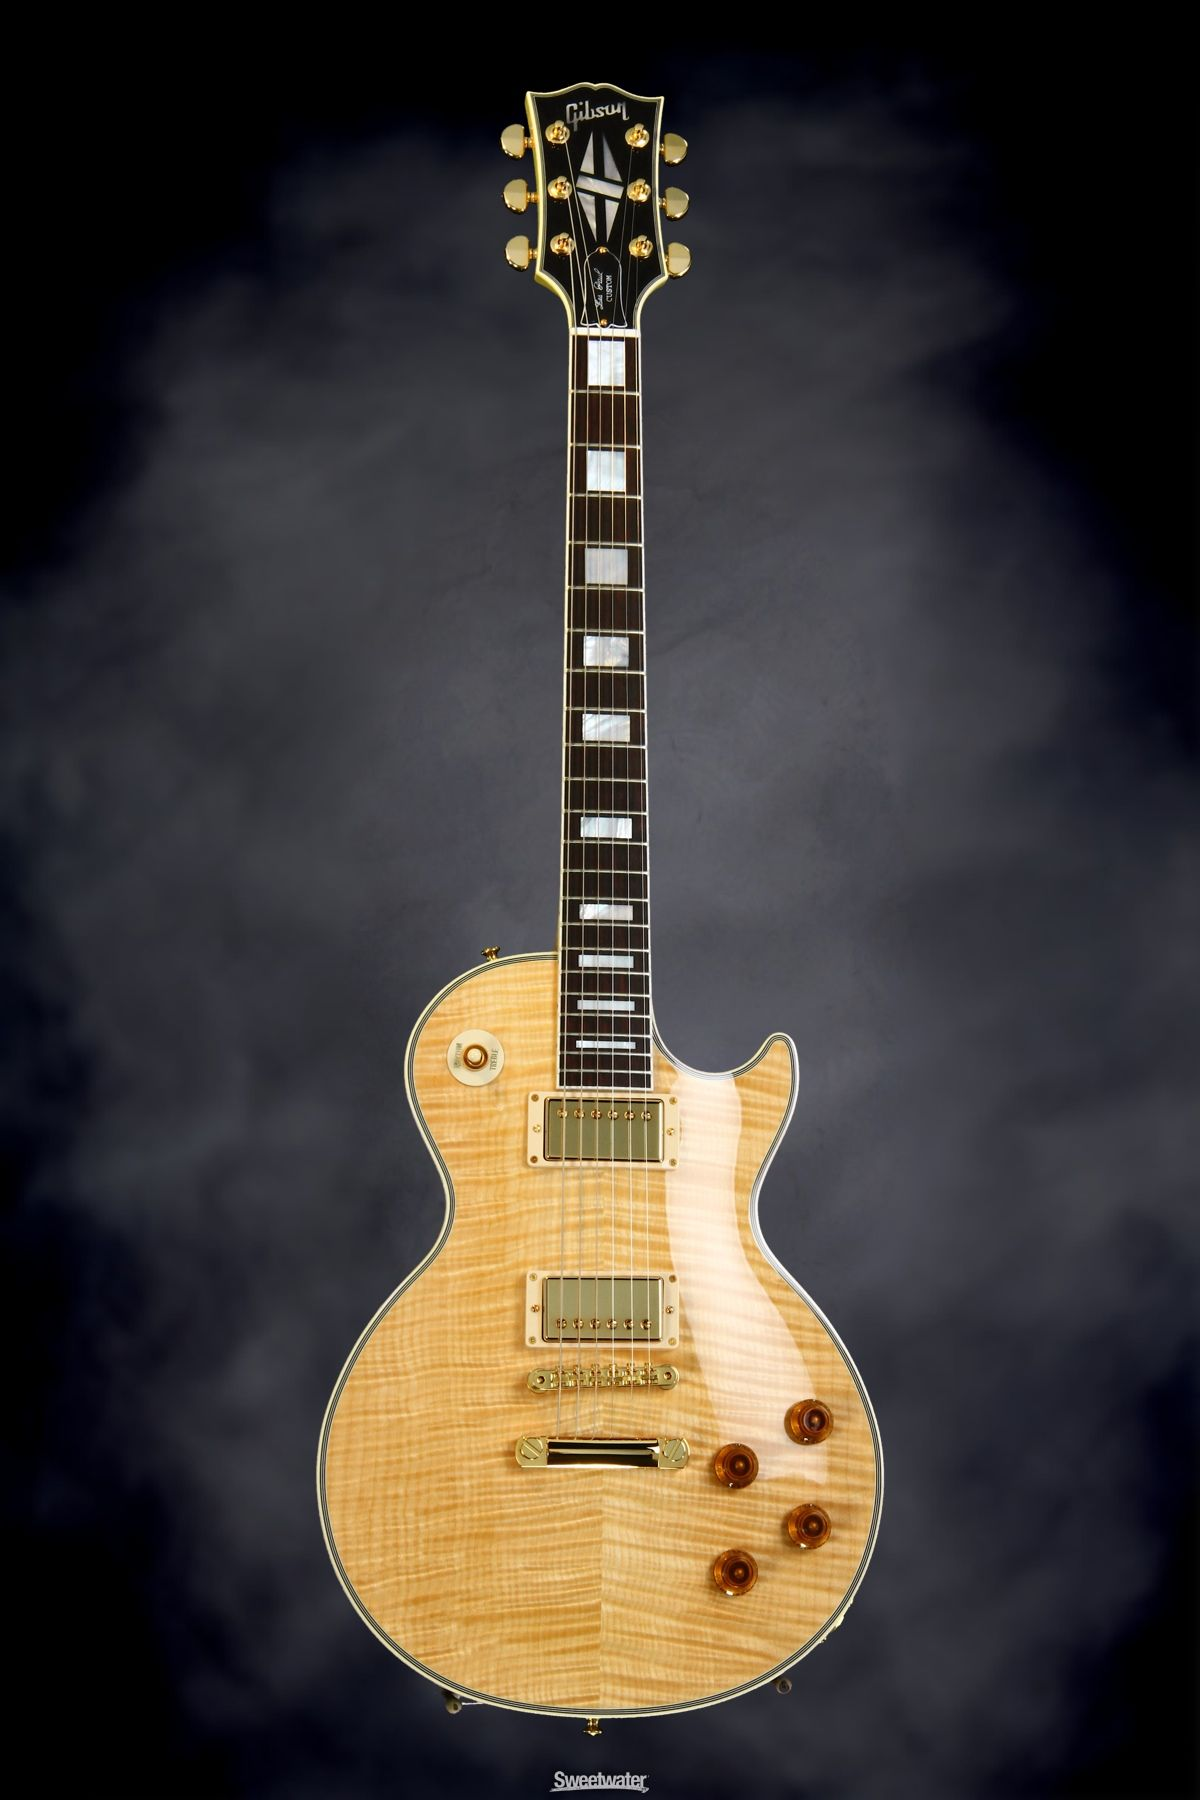 gibson custom sweetwater les paul modern custom natural flamed maple neck. Black Bedroom Furniture Sets. Home Design Ideas